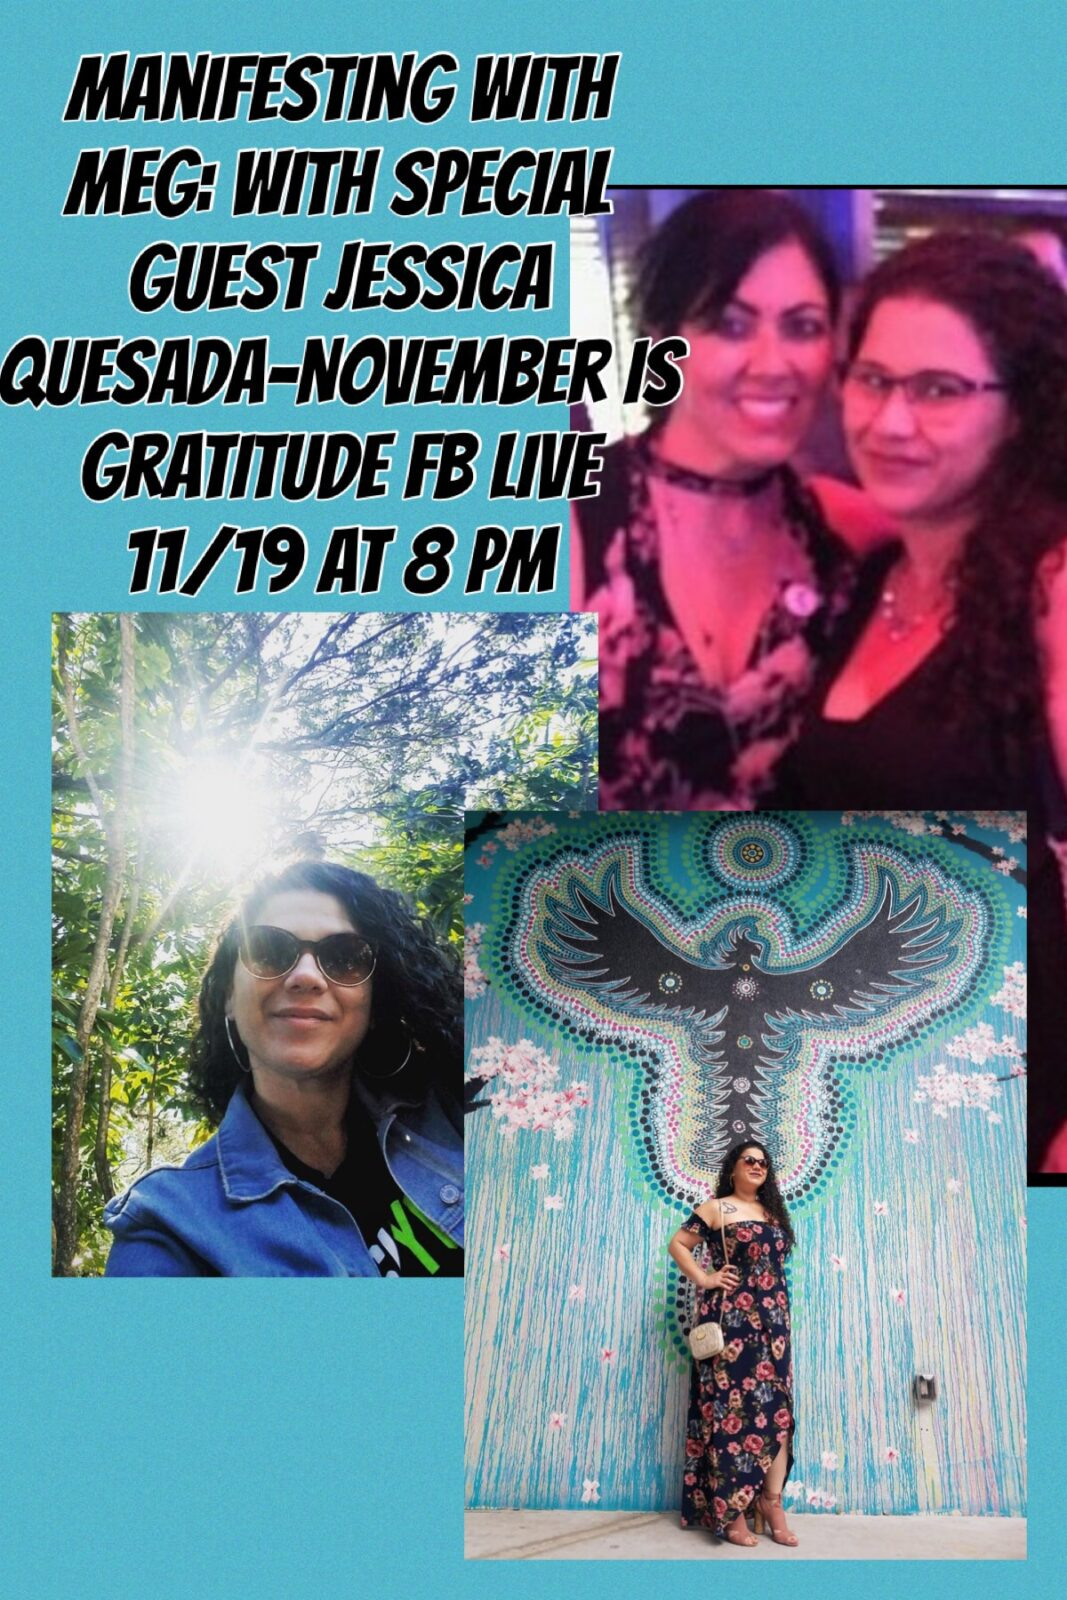 Manifesting with Meg: Lucky Episode 13-Attitude of Gratitude with Special Guest Jessica Quesada